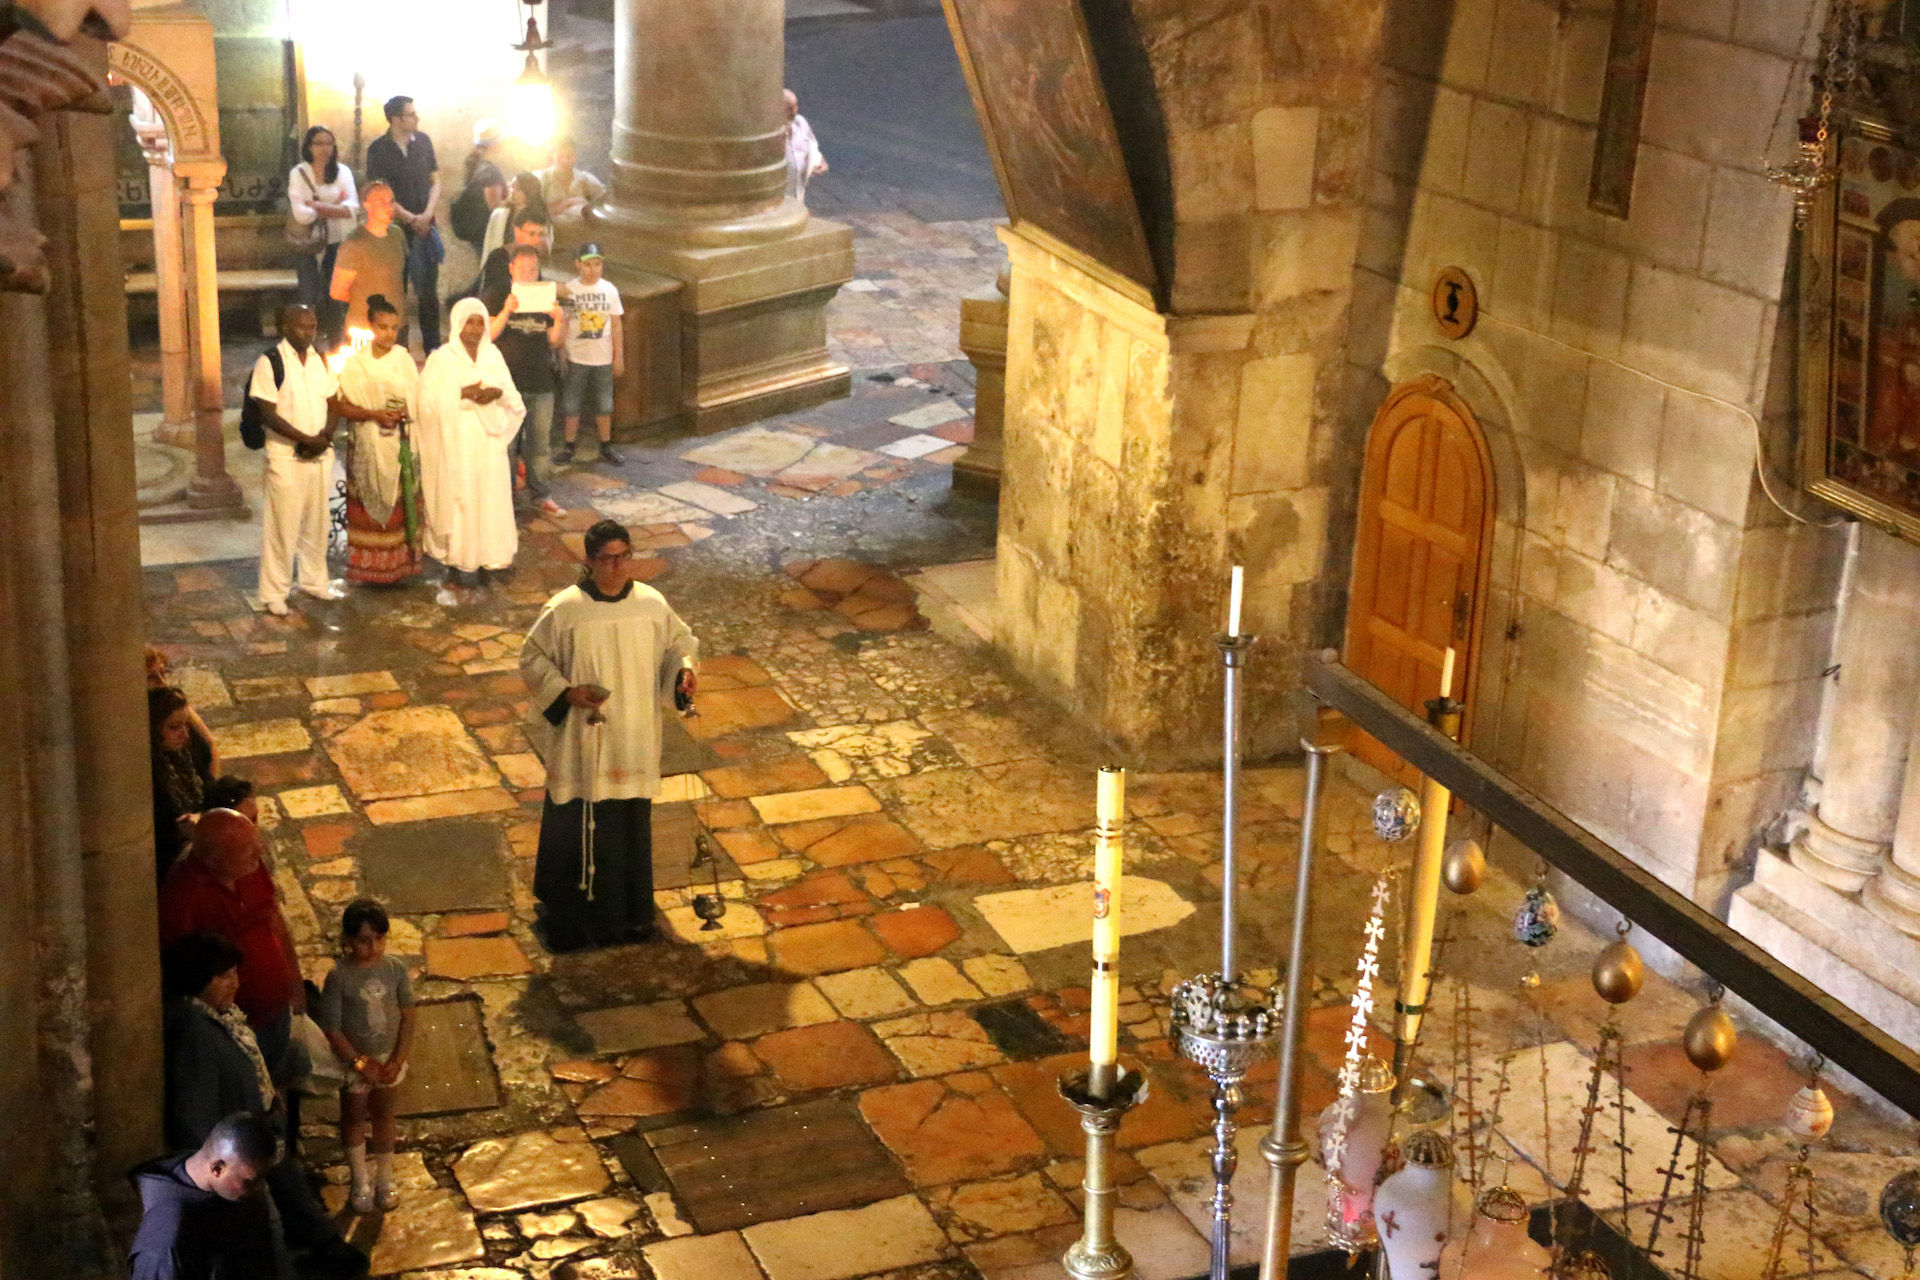 JERUSALEM, ISRAEL, MAY 29, 2016. Beginning of mass at the Church of the Holy Sepulchre in the Christian Quarter of the Old City, East Jerusalem, Israel. 05/29/2016. Photo by Donna M. Airoldi